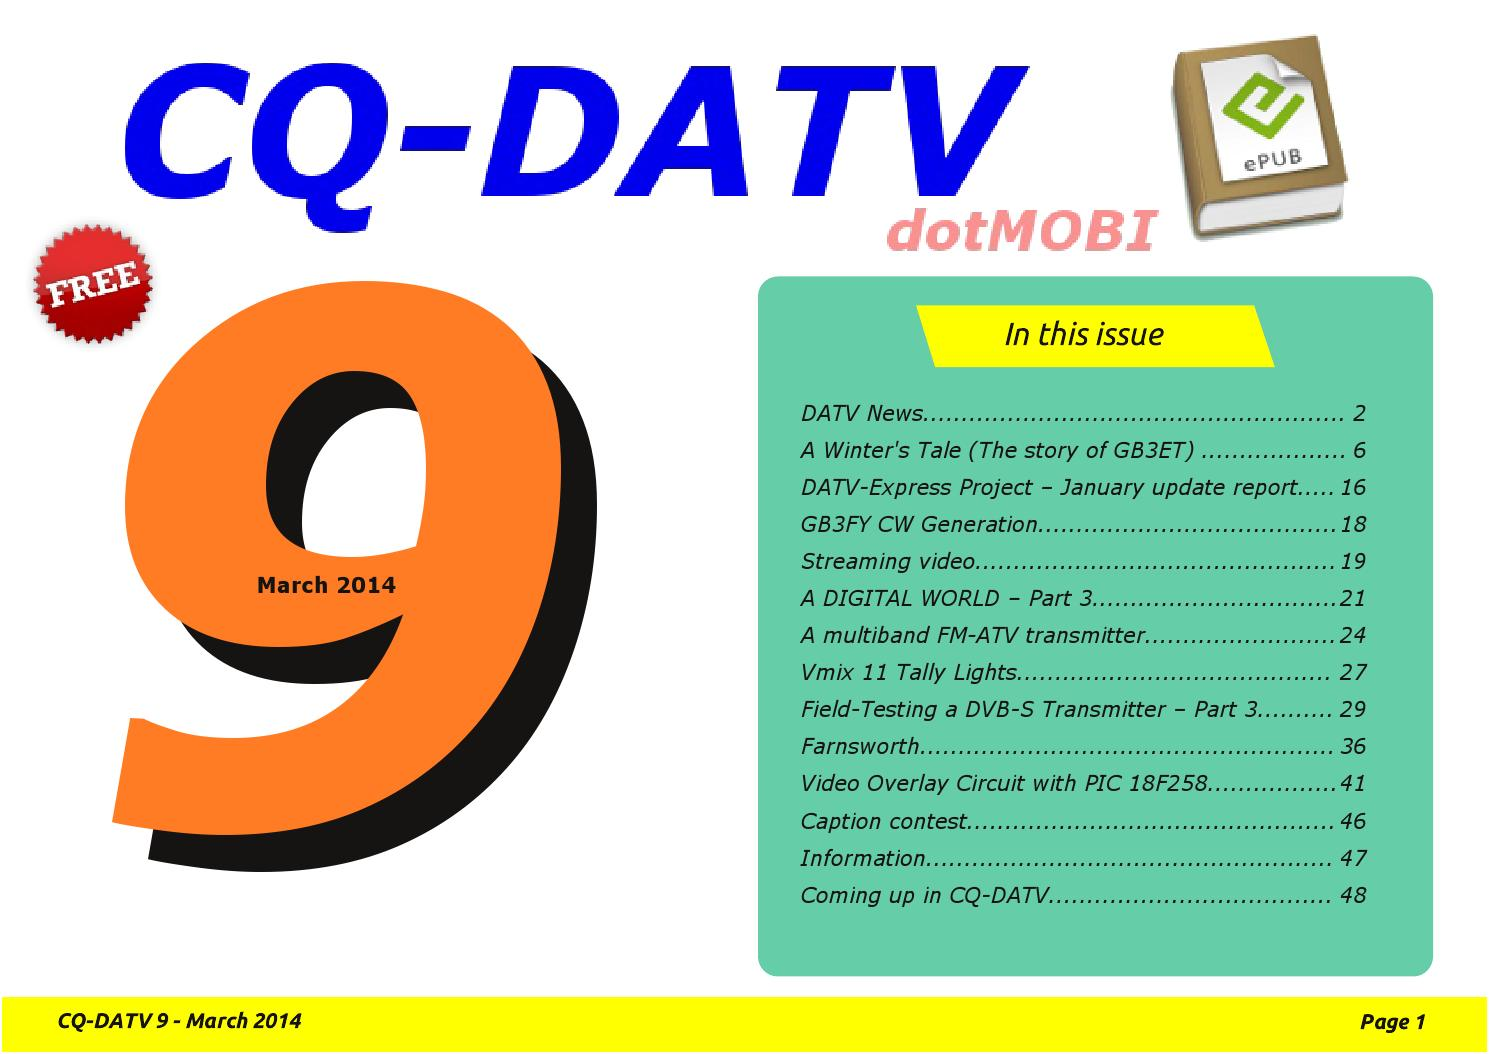 Cq datv9 by CQ-DATV - issuu